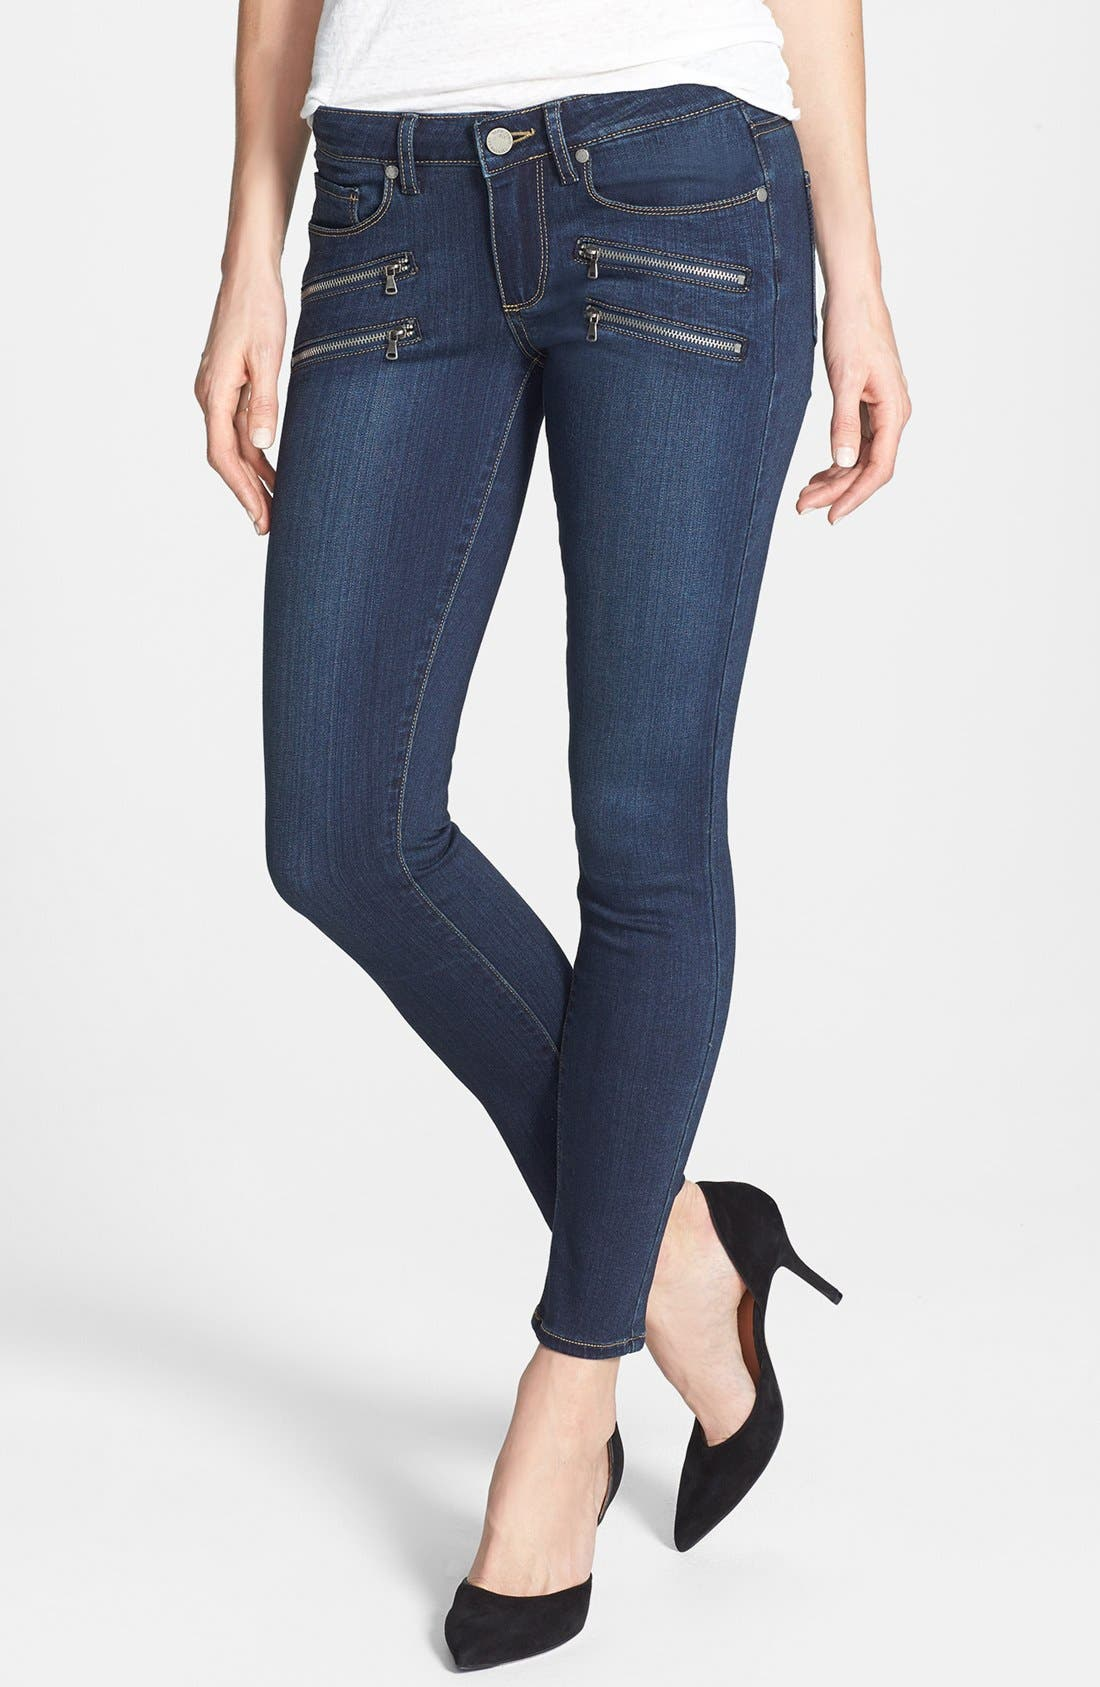 Transcend - Edgemont Zip Detail Ultra Skinny Jeans,                         Main,                         color, Transnow